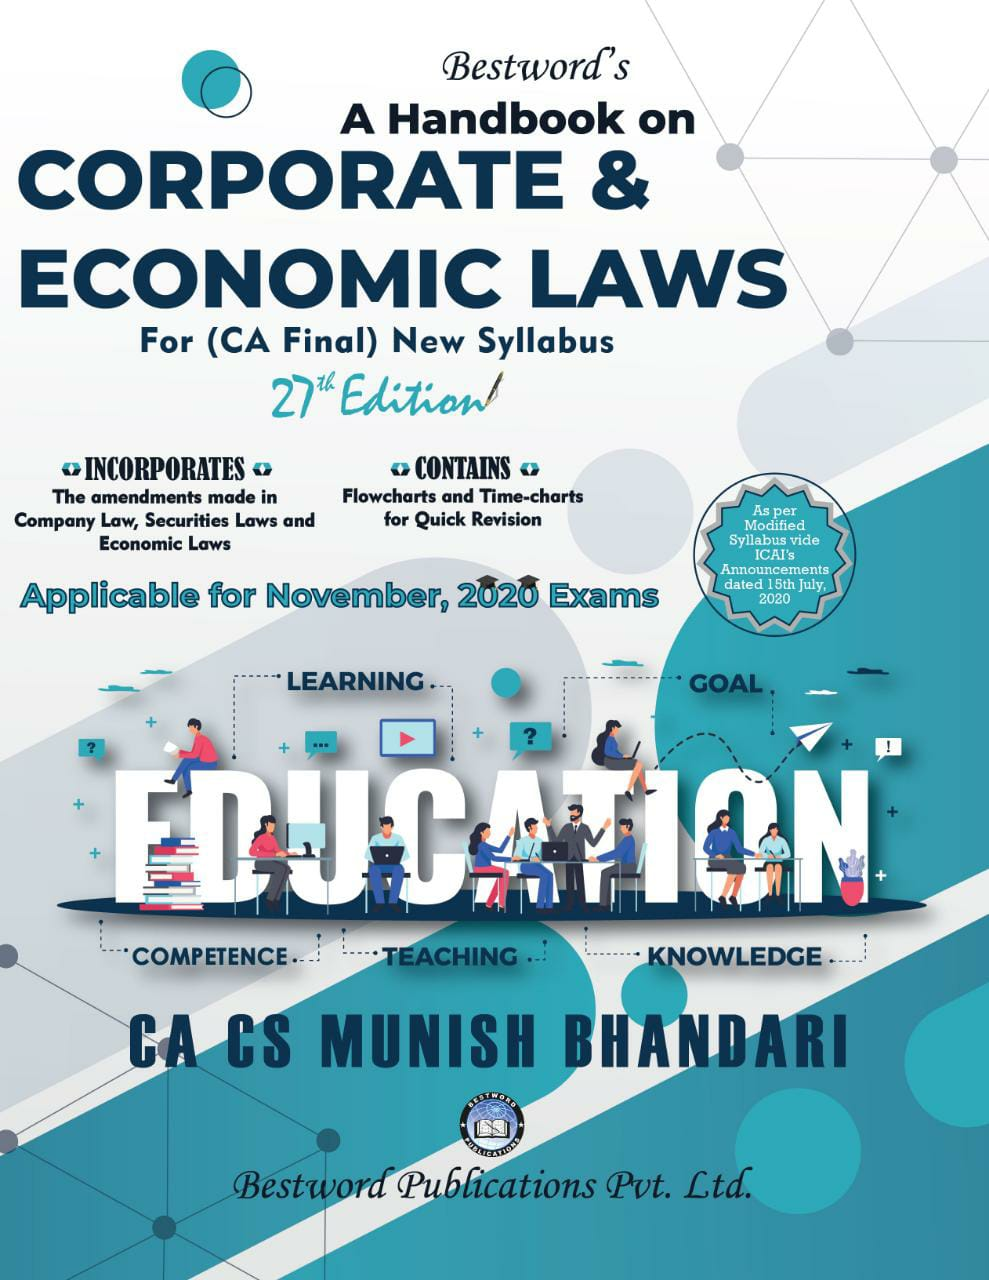 Bestword CA Final Handbook on Corporate and Economic Laws New Syllabus By Munish Bhandari Applicable for Nov 2020 Exam